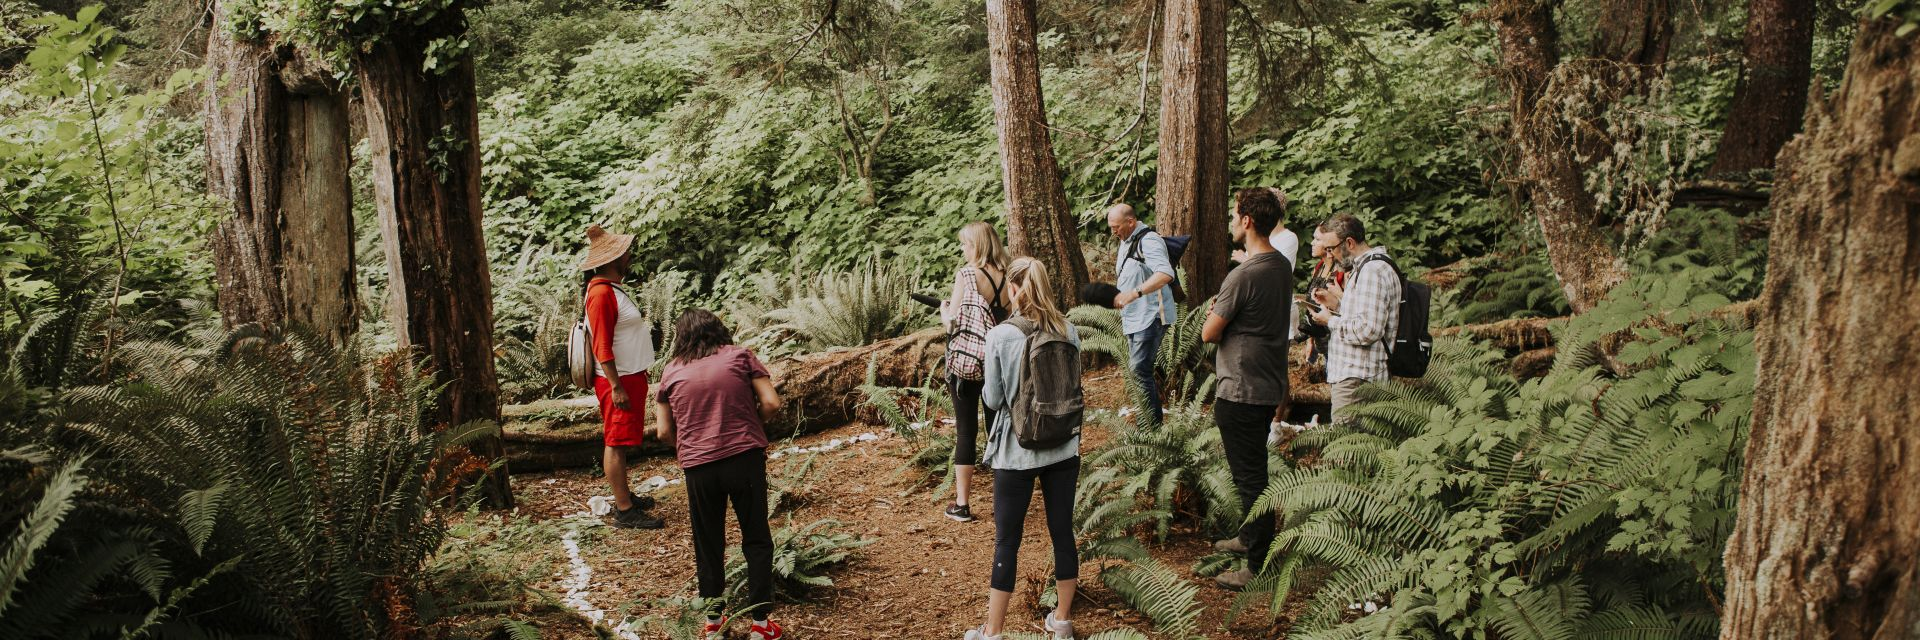 A group gathers in the Vancouver Island rainforest during a tour.